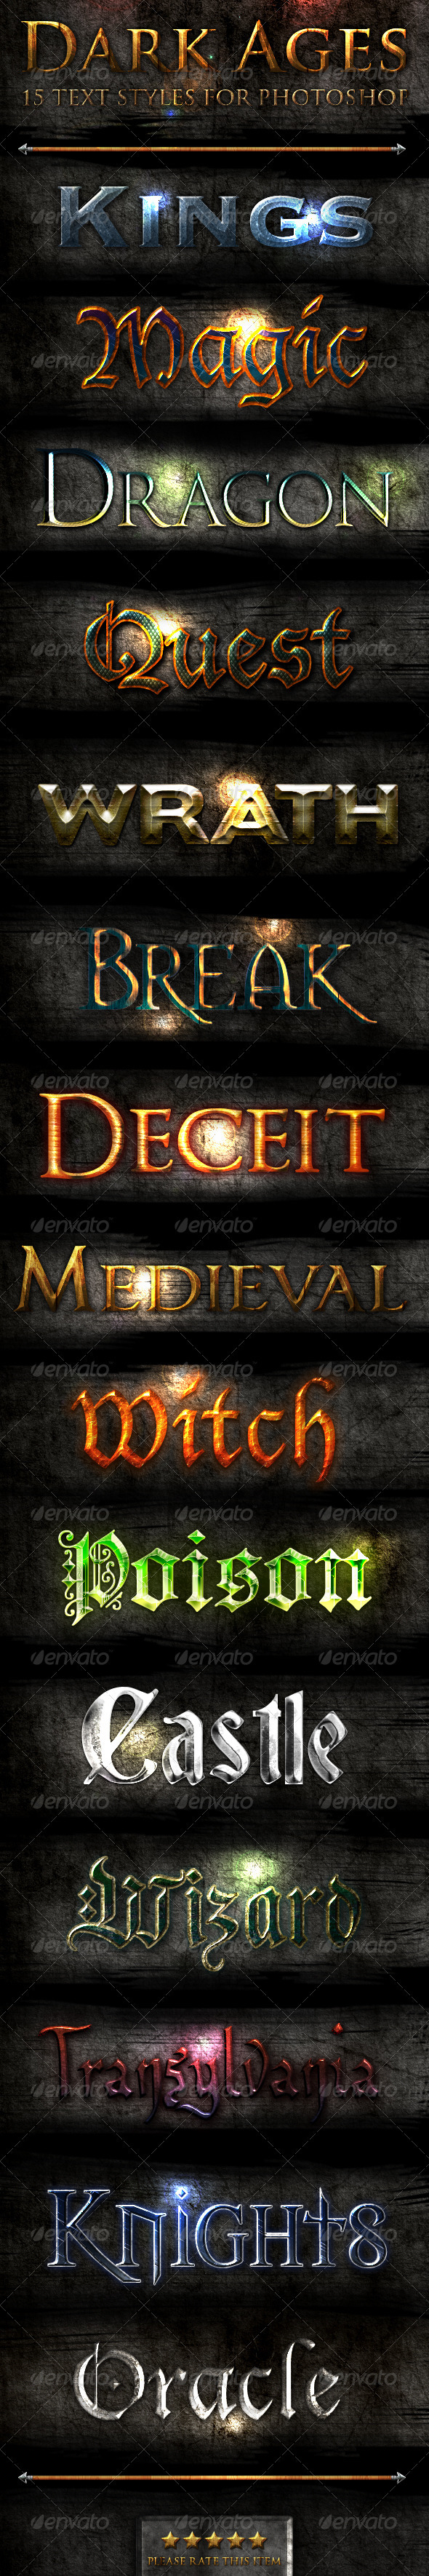 Dark Ages - Photoshop Text Styles - Text Effects Styles